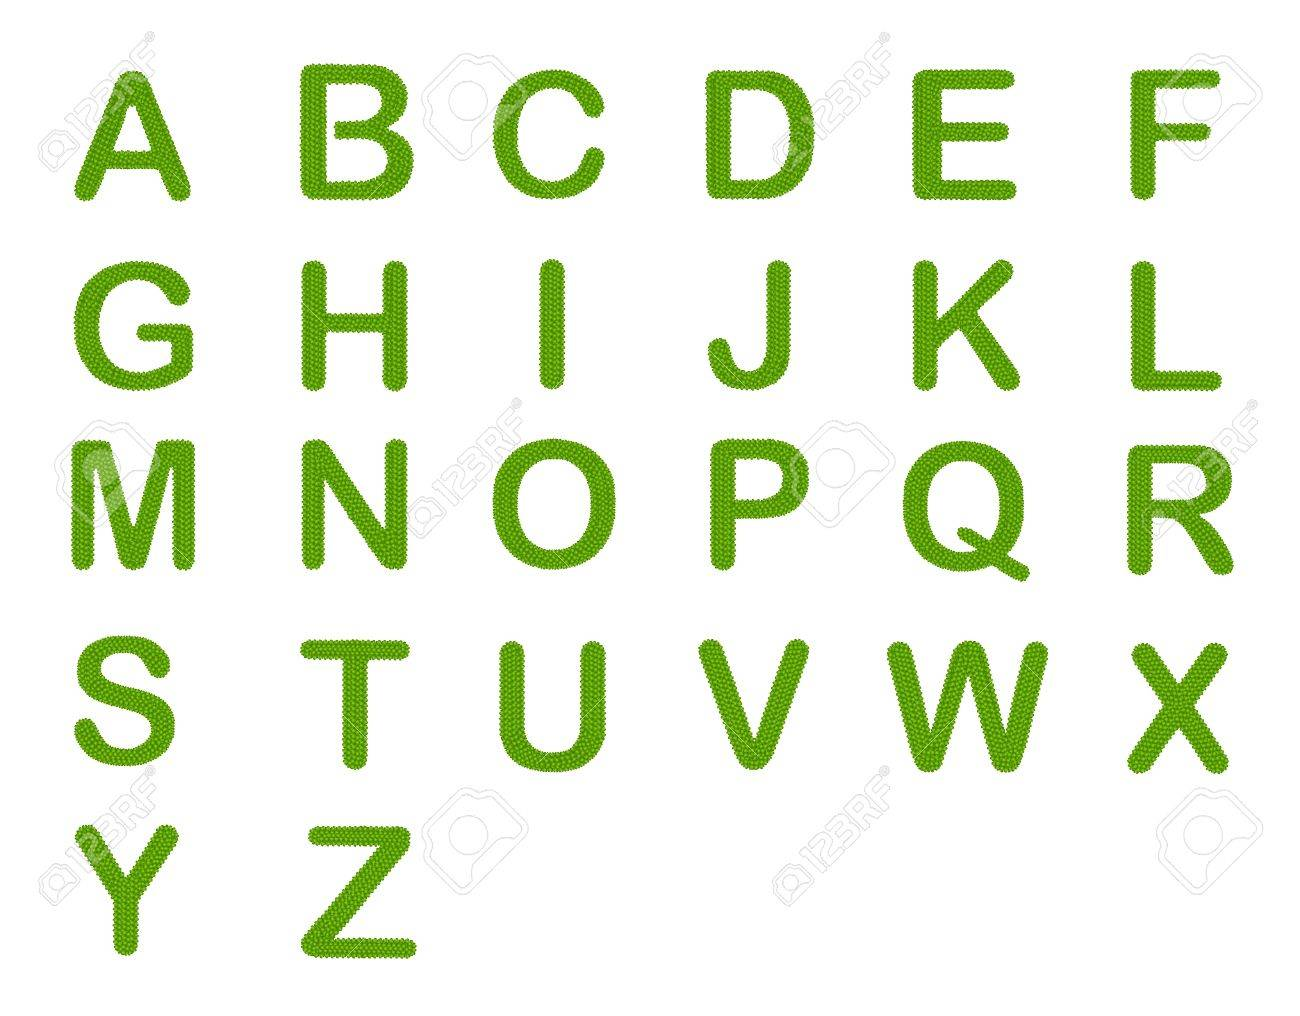 Letter A-Z, Alphabet Letters Made of Four Leaf Clover Isolated on White Background Stock Photo - 16010904